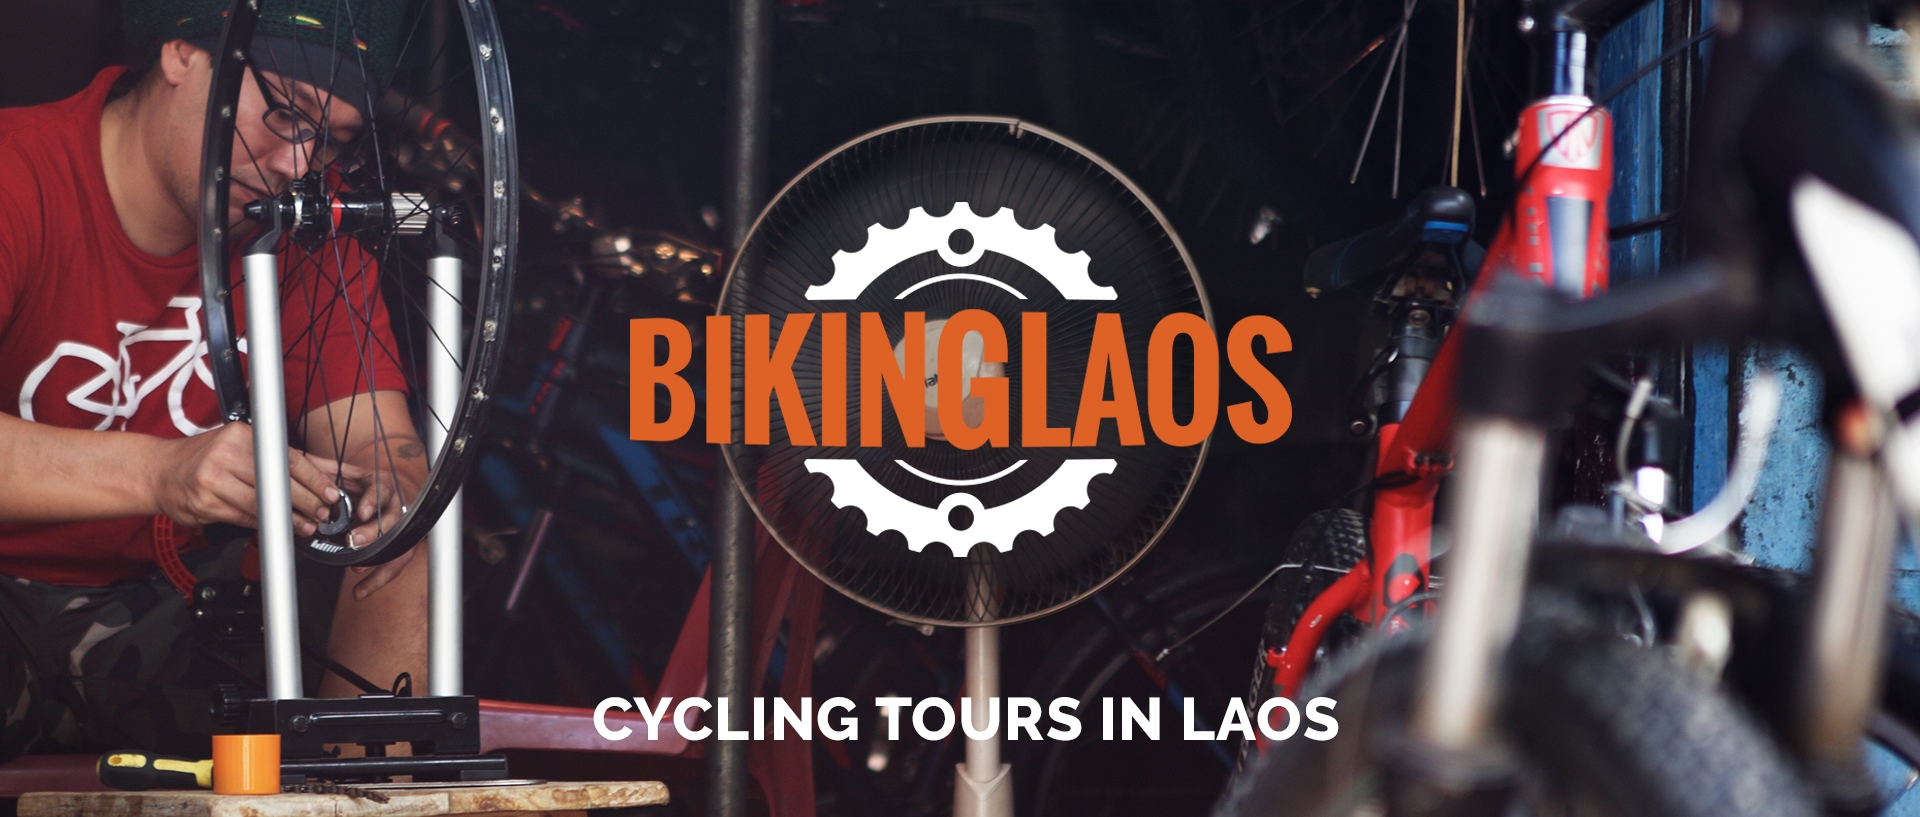 Biking Laos